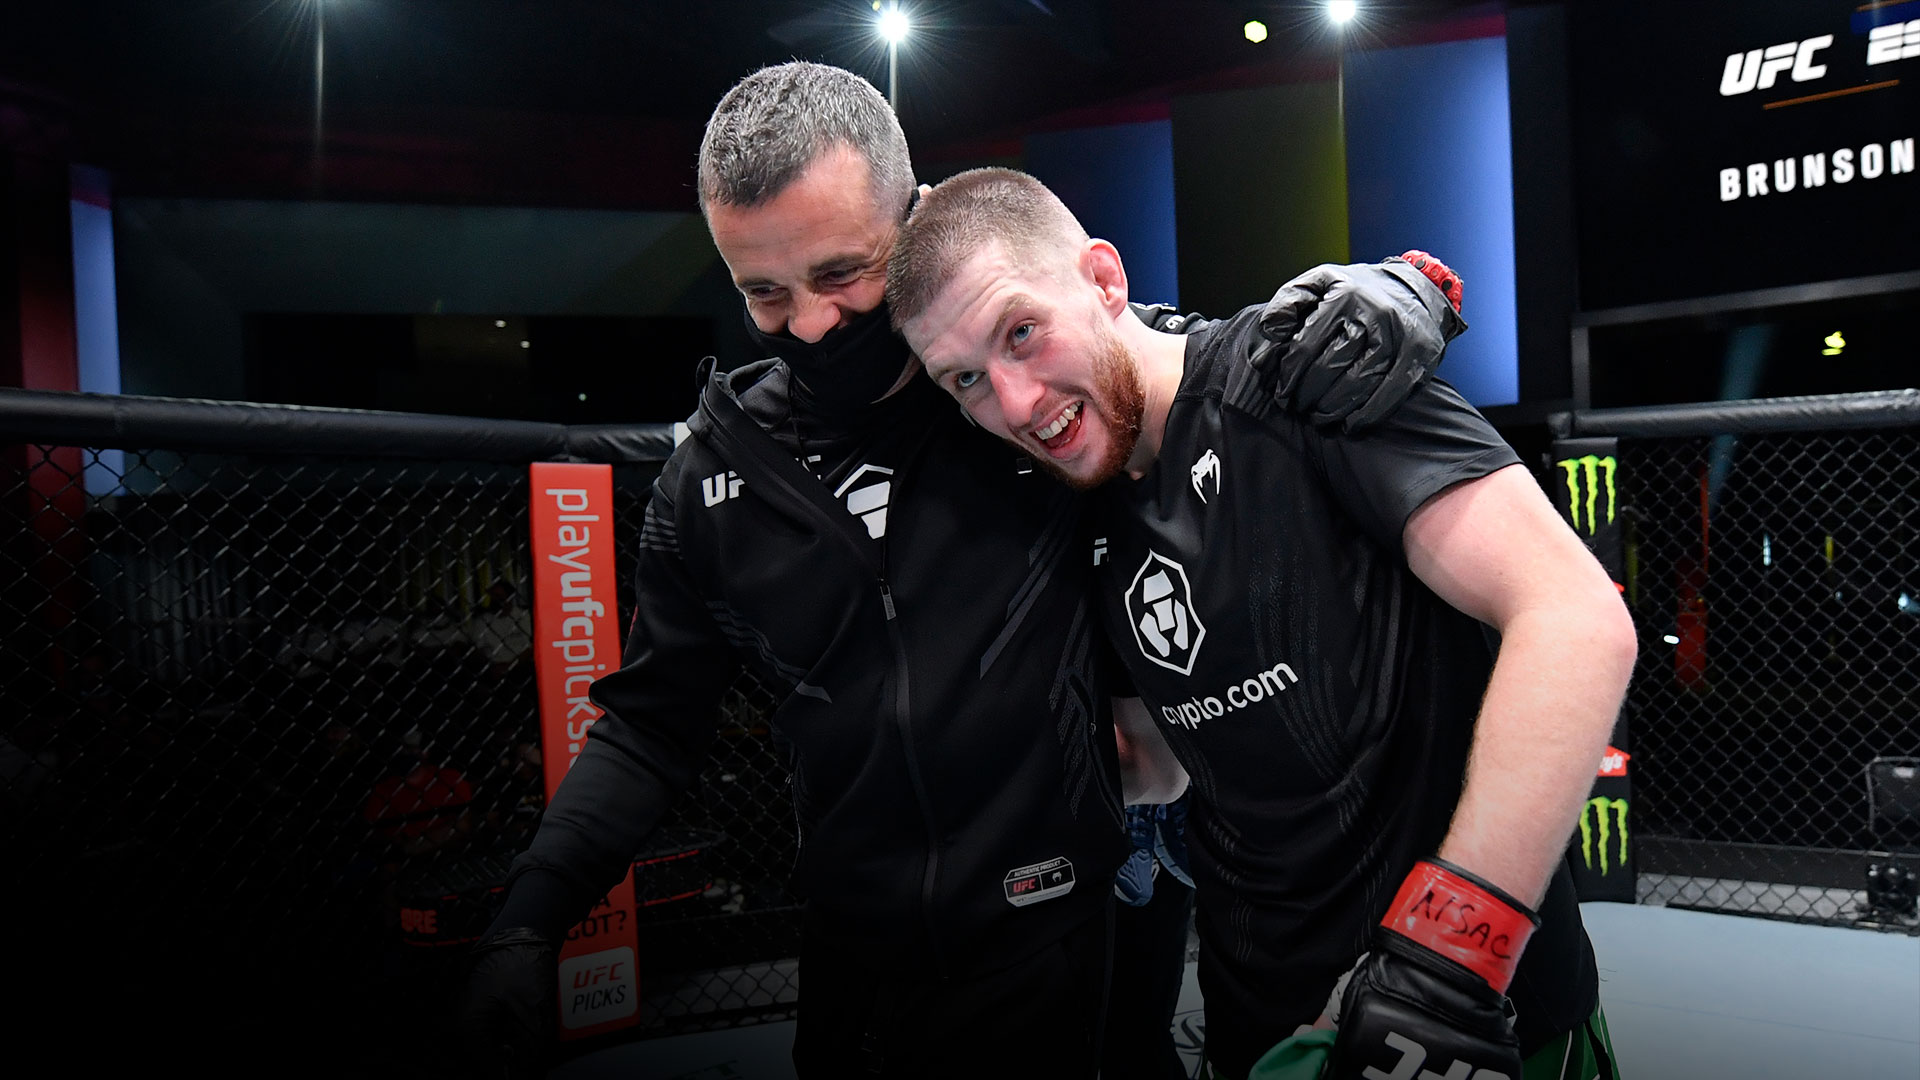 Jack Shore of Wales reacts after his victory over Liudvik Sholinian of the Ukraine in their bantamweight fight during the UFC Fight Night event at UFC APEX on September 04, 2021 in Las Vegas, Nevada. (Photo by Jeff Bottari/Zuffa LLC)